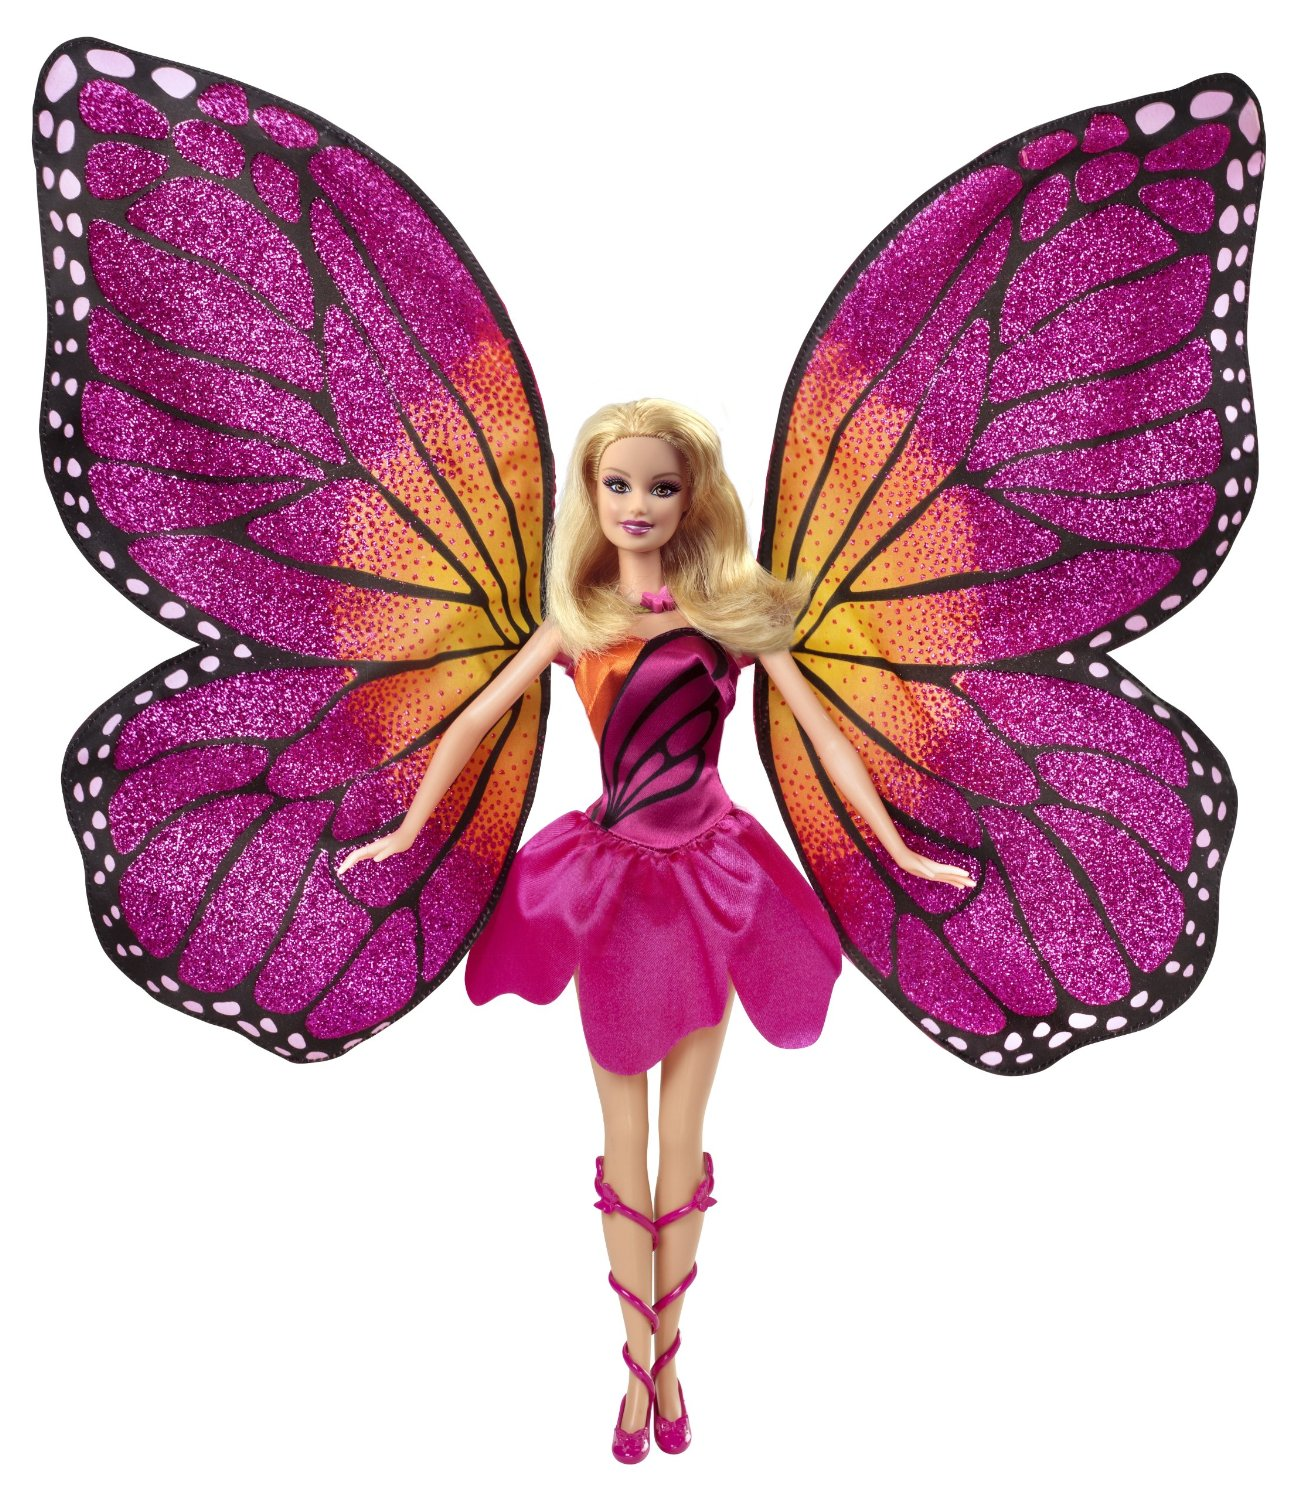 Barbie Mariposa Doll by Mattel